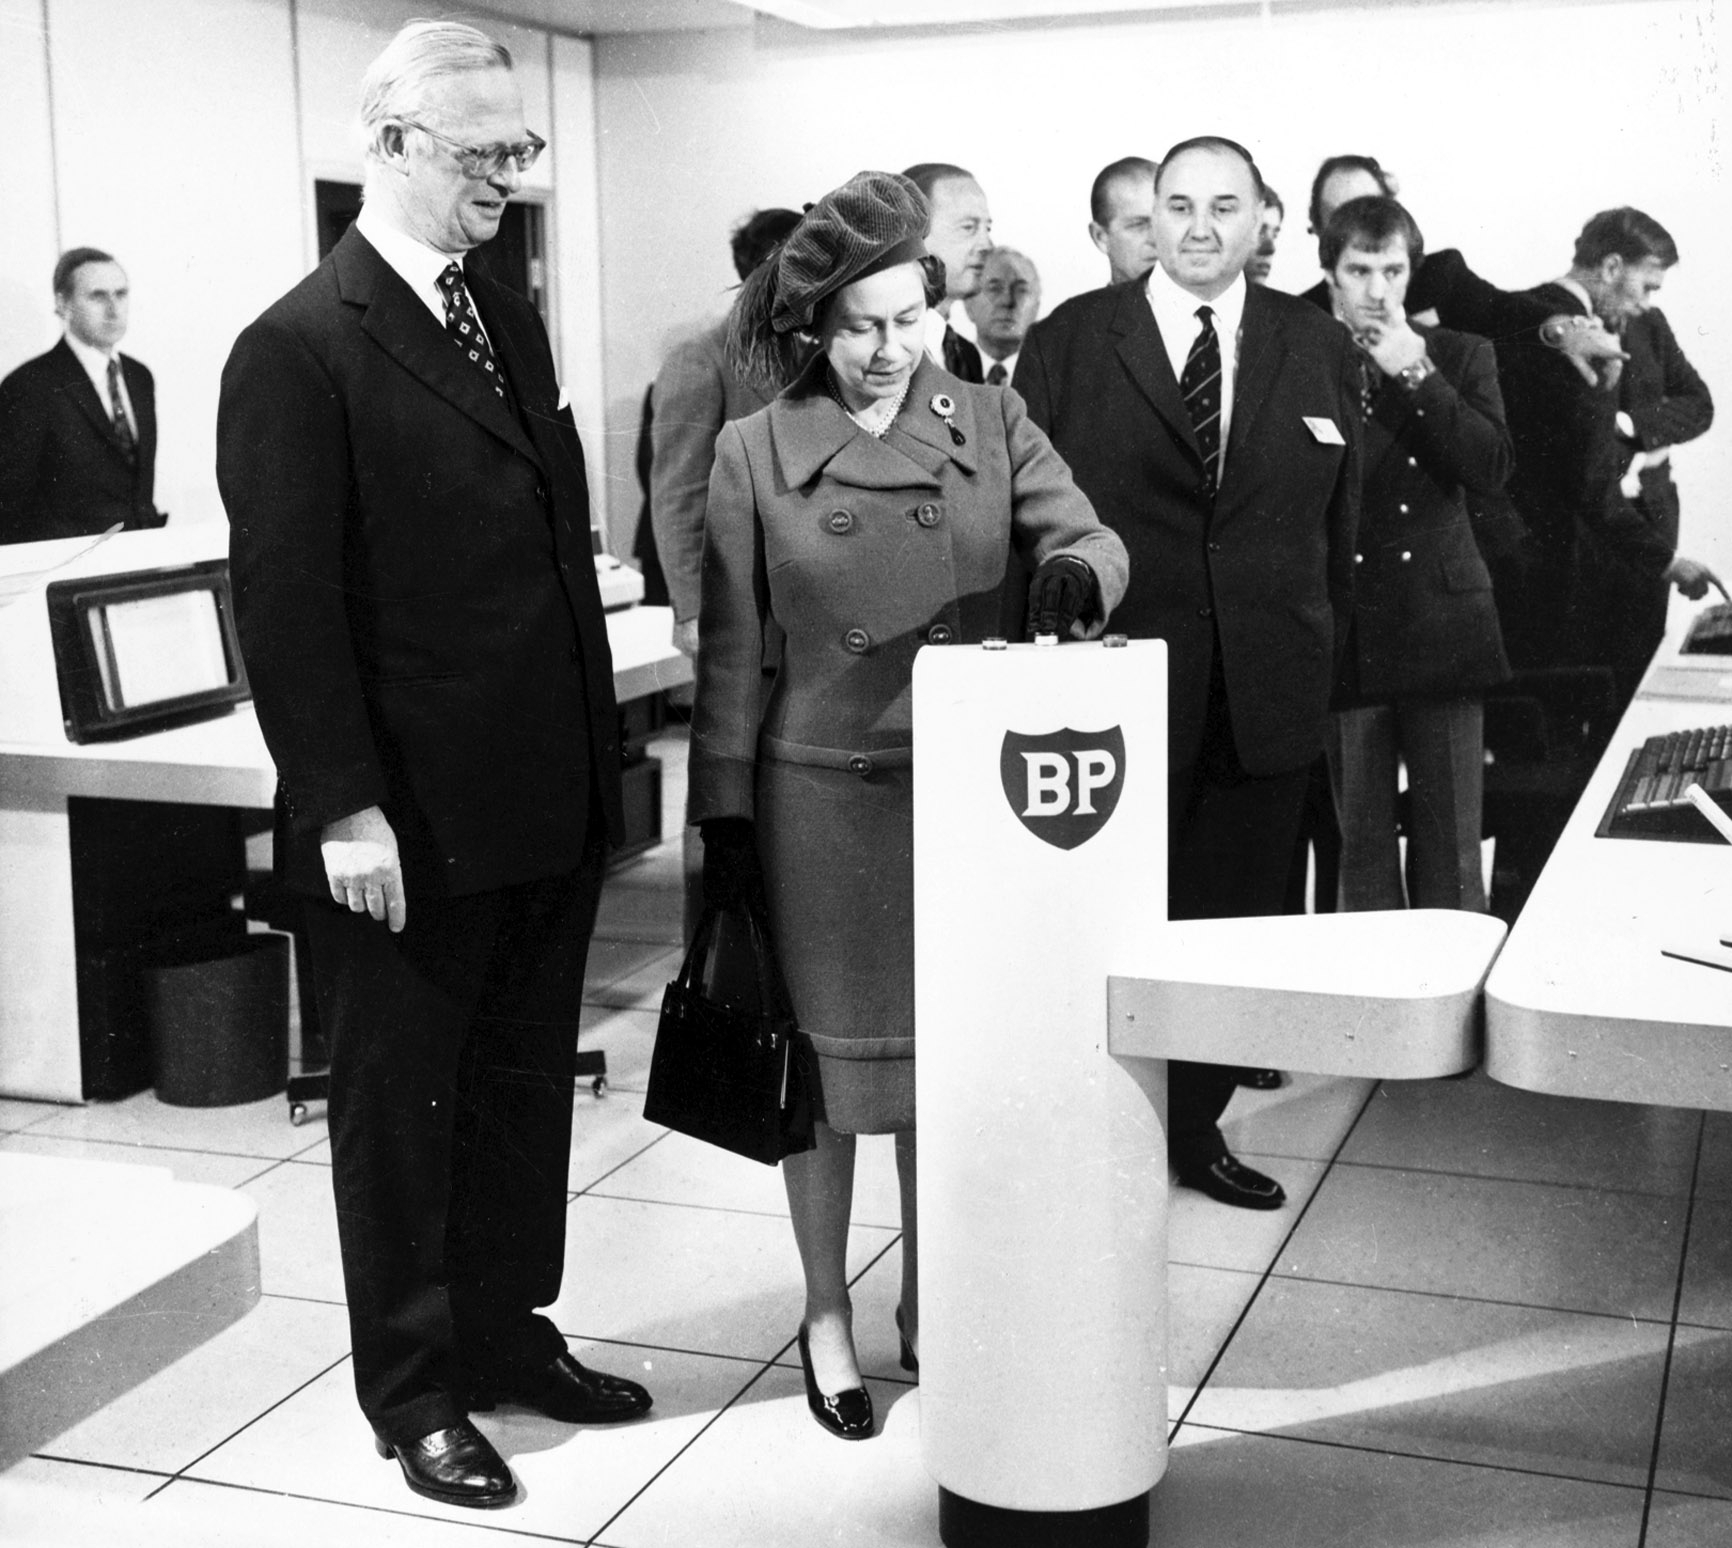 """The Queen at the """"switch-on""""  ceremony where she officially starts the oil flowing from the Forties Field at the BP complex in Dyce. November 3, 1975."""